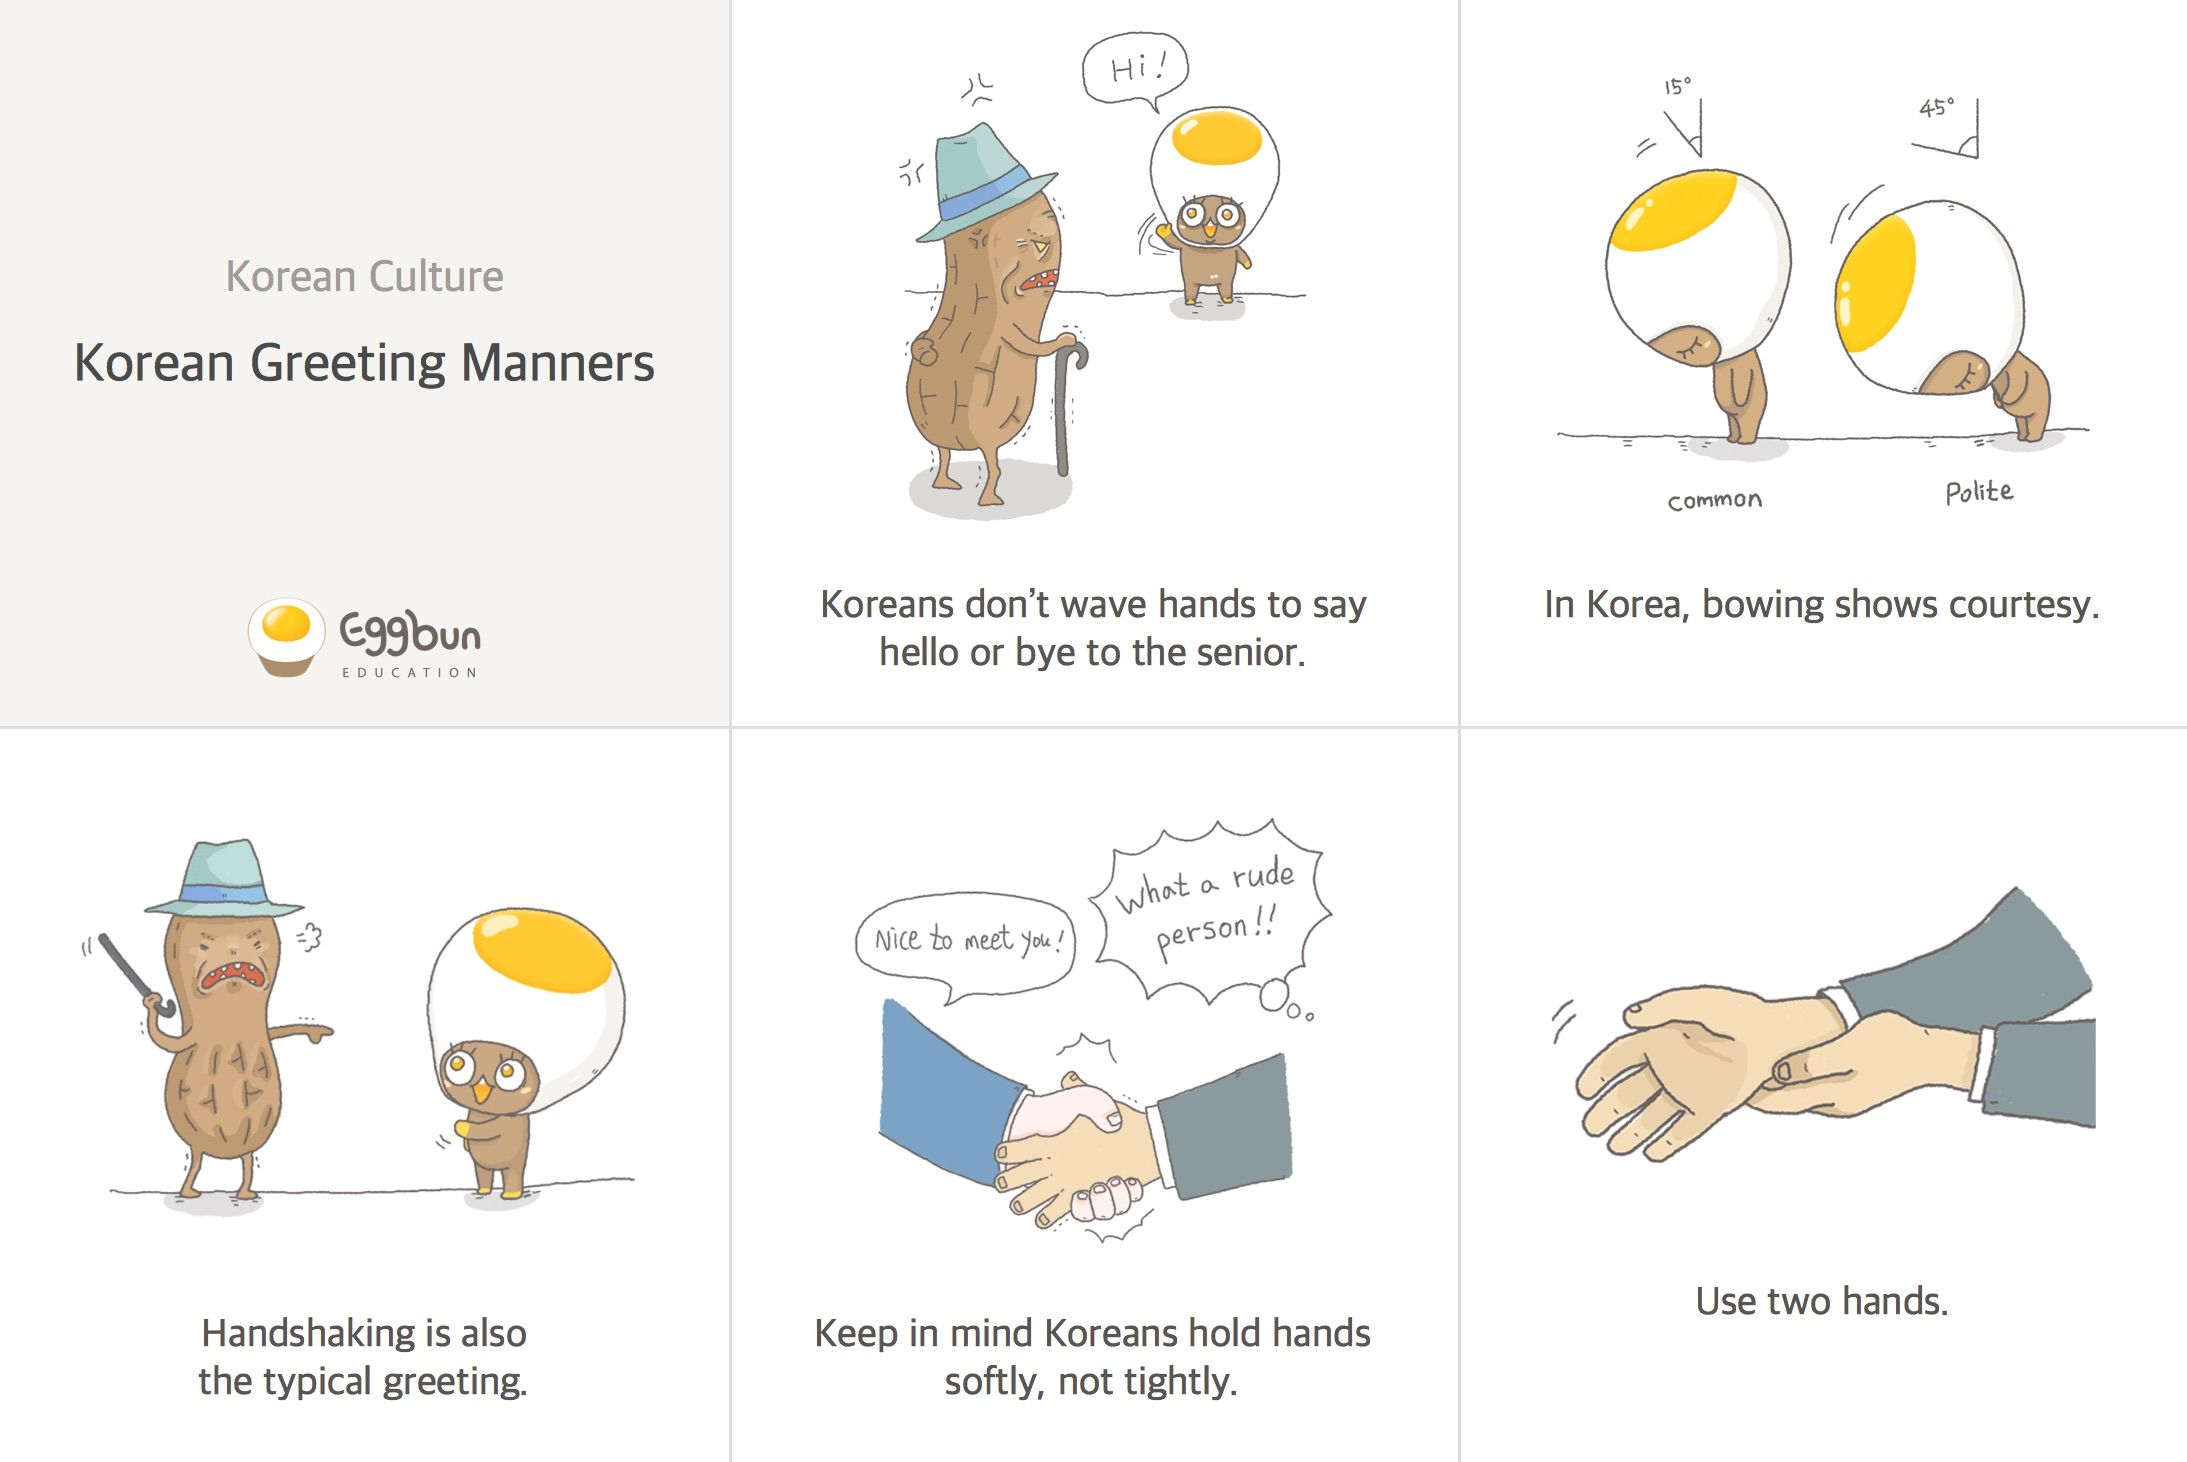 5 korean greeting manners you should know before visiting